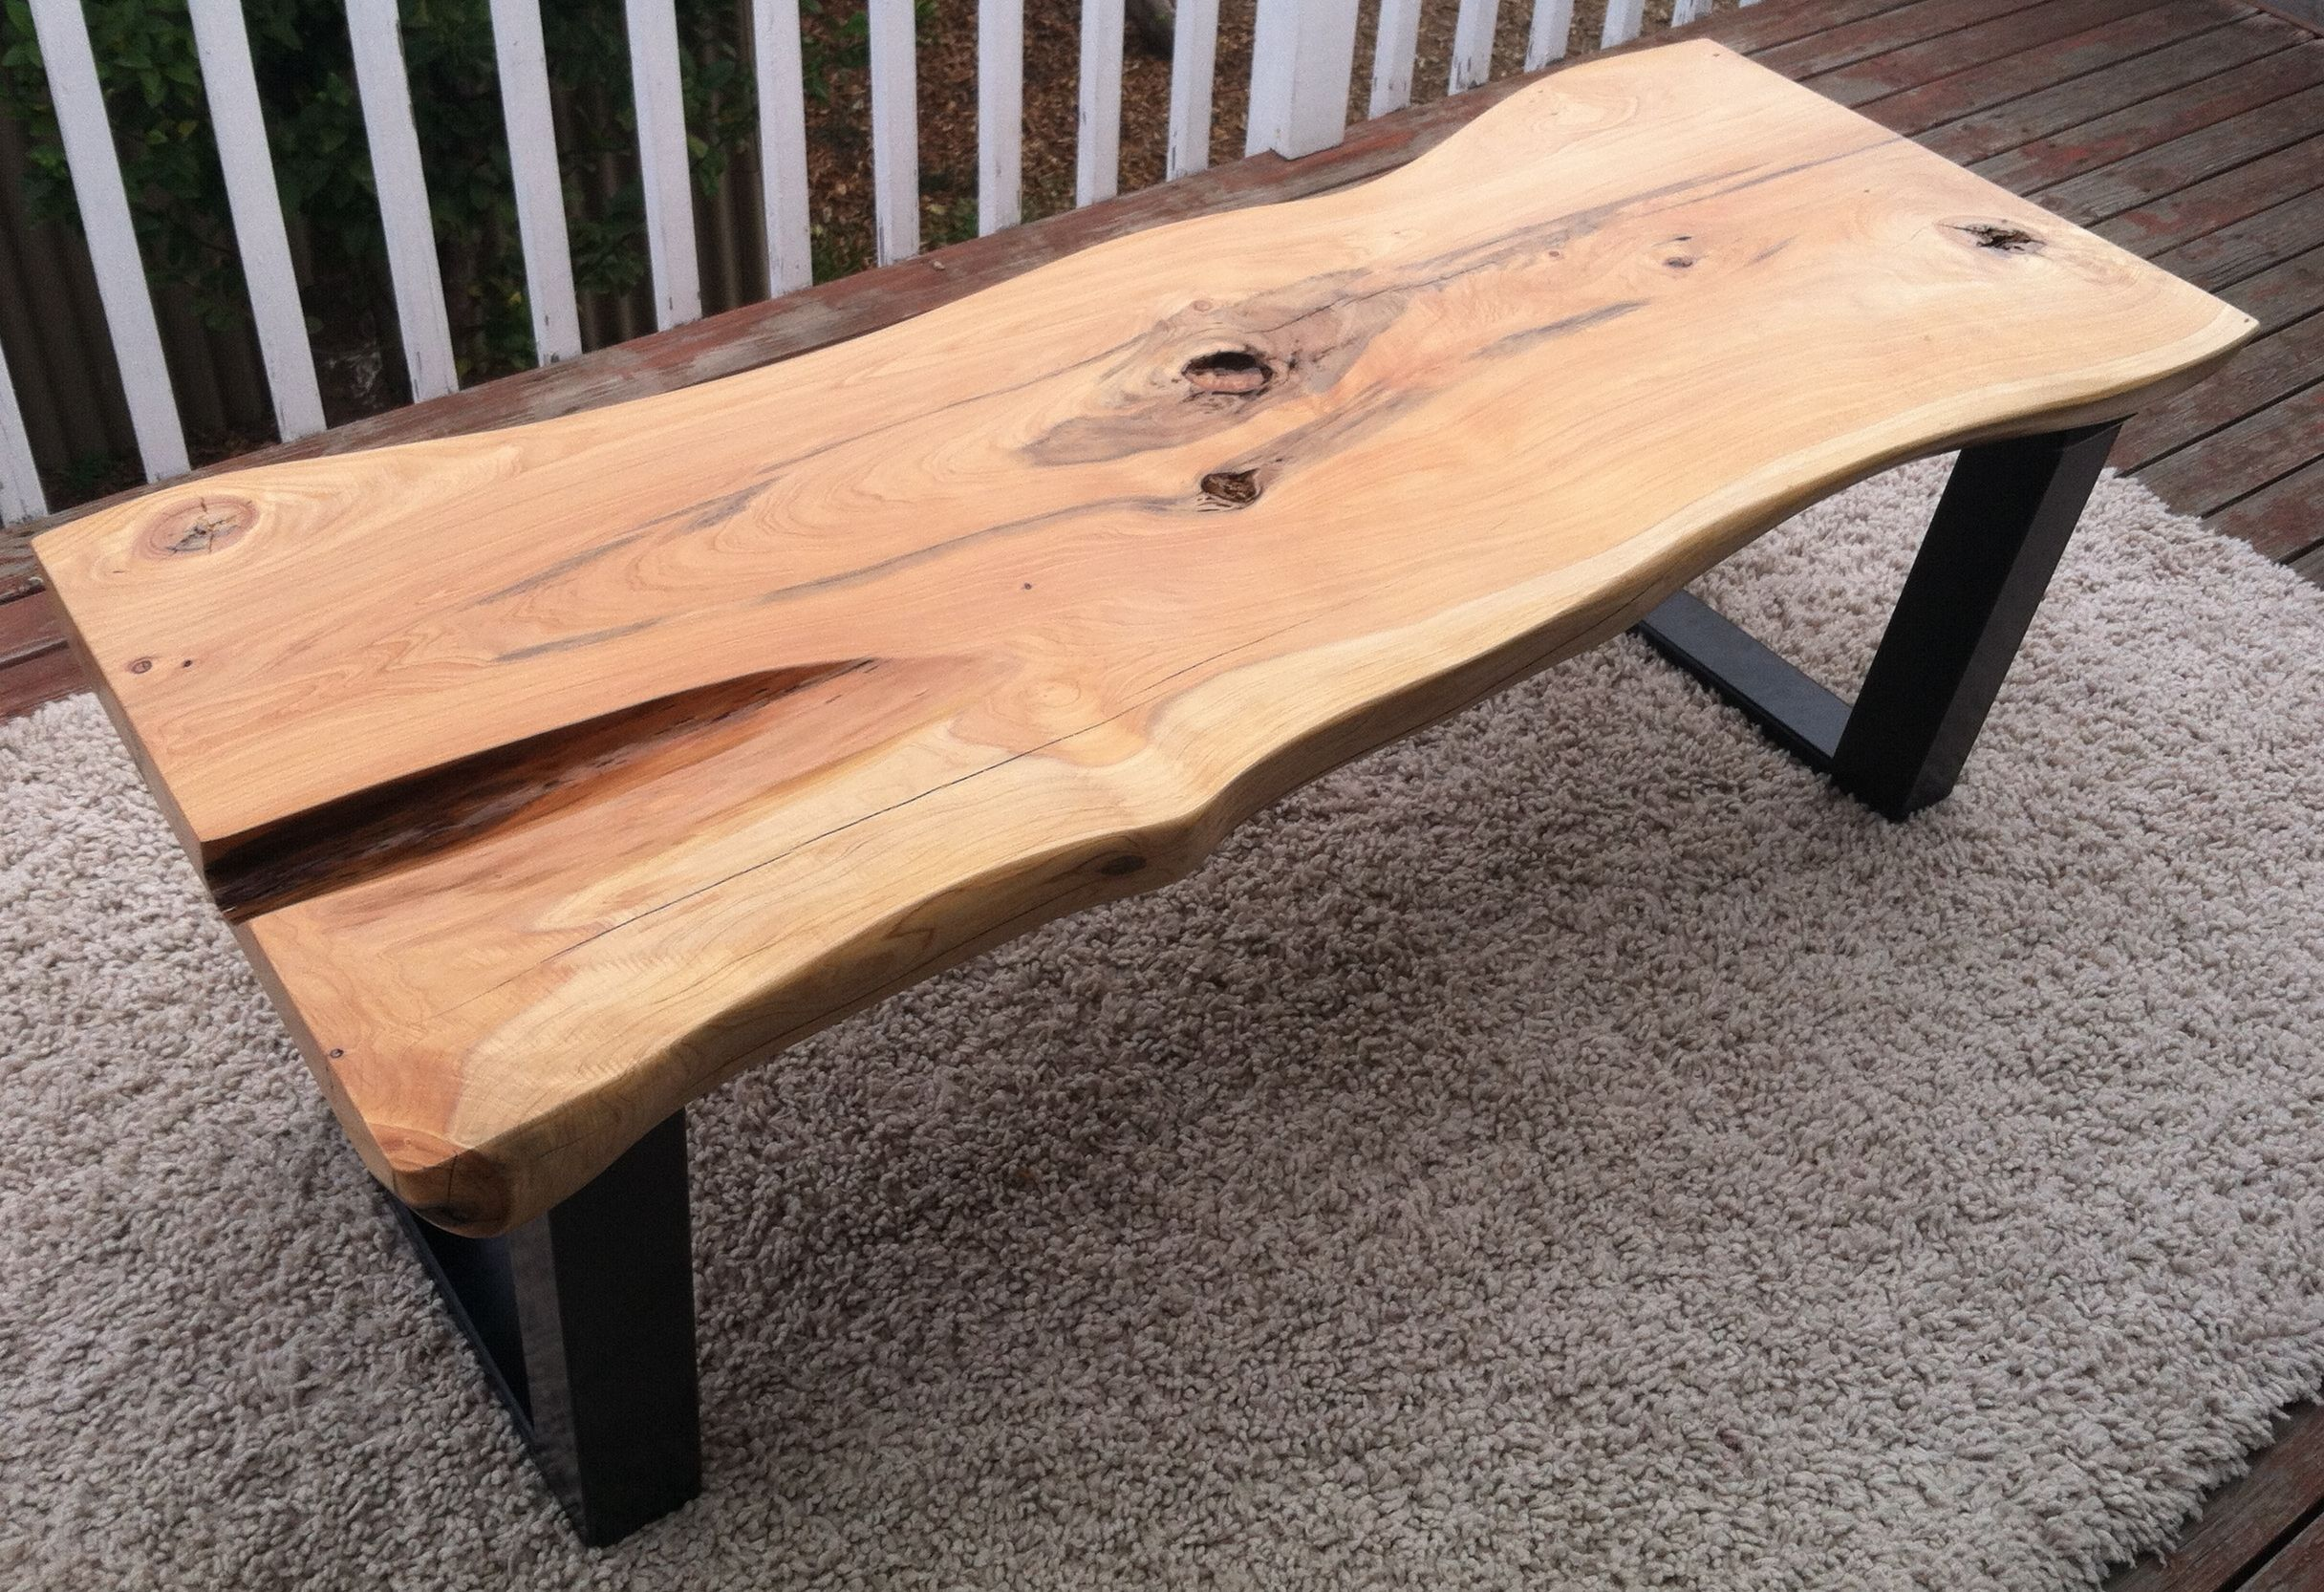 Organic Monterey Pine Slab Coffee Table with Steel Legs